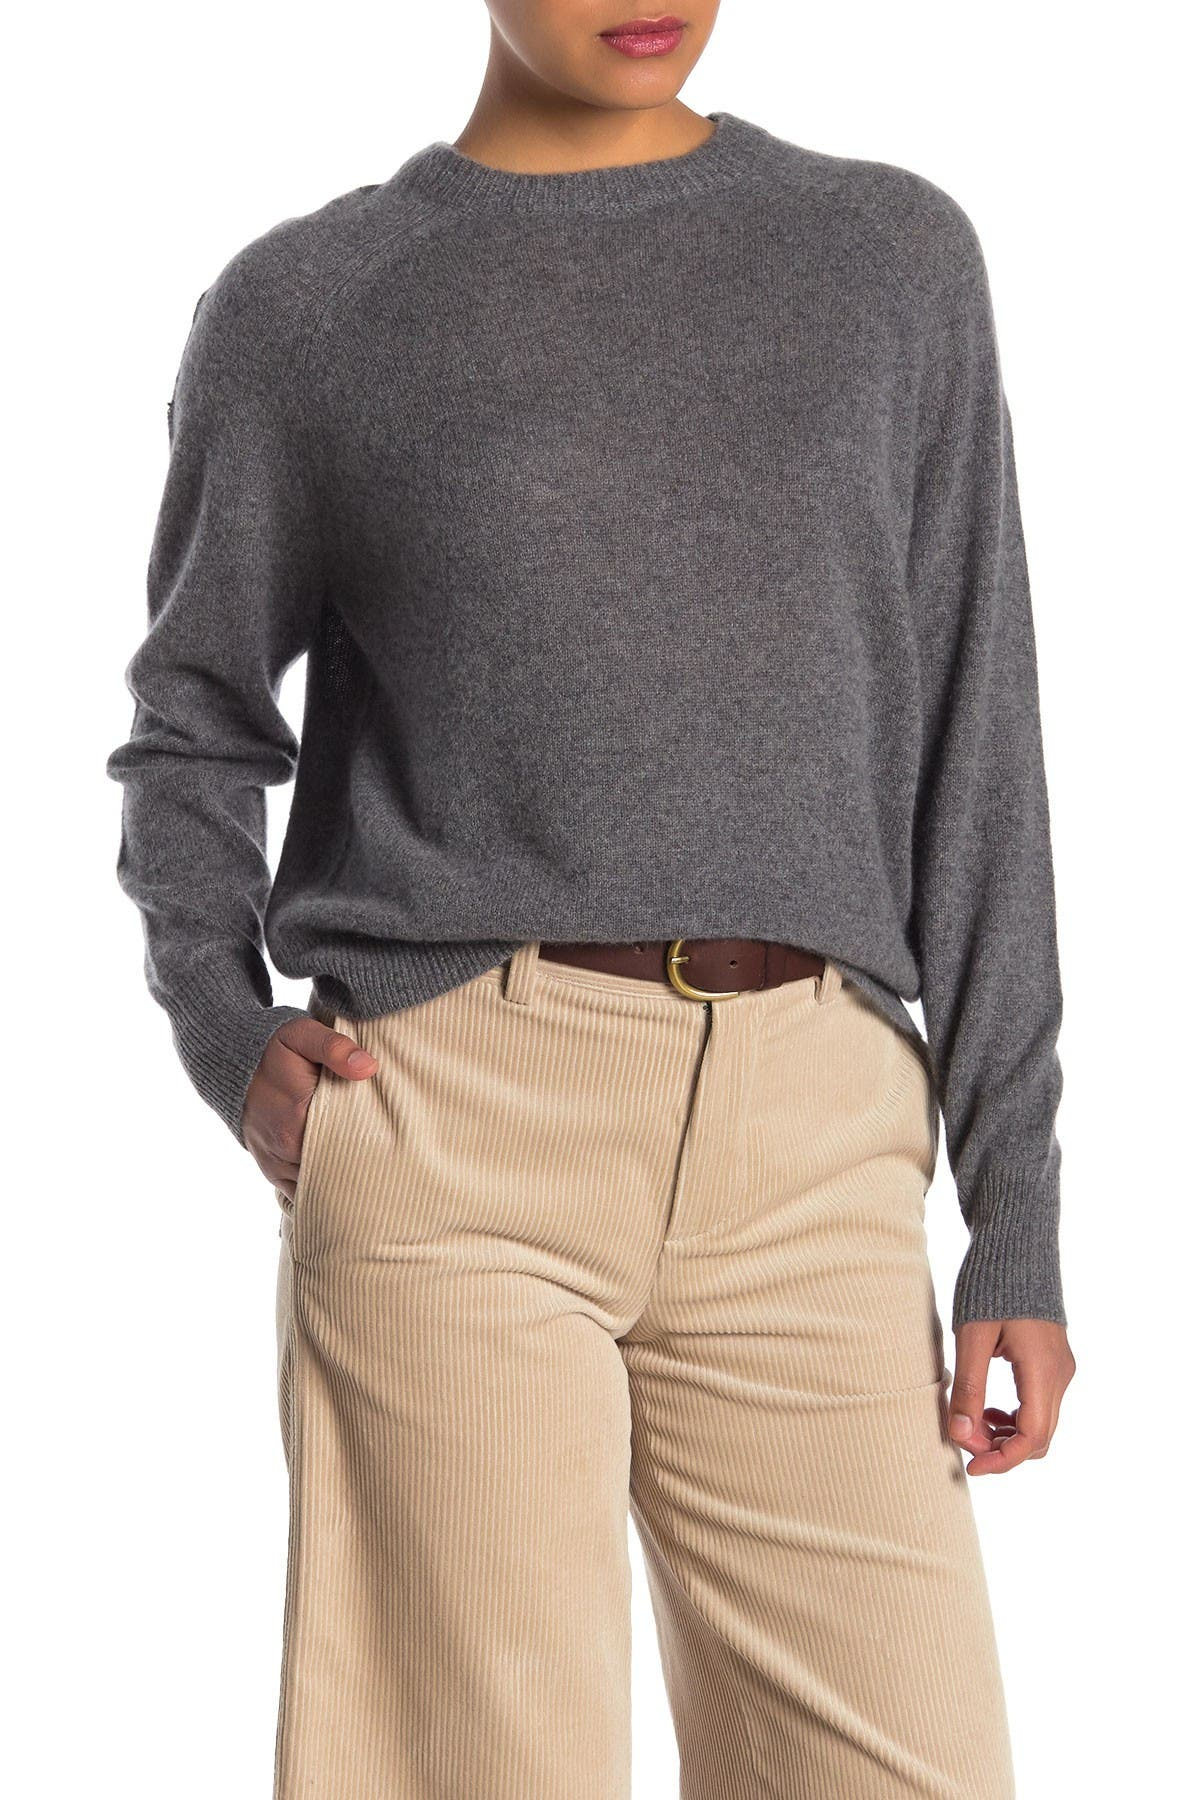 Image of 360 Cashmere Gracie Cashmere Sweater